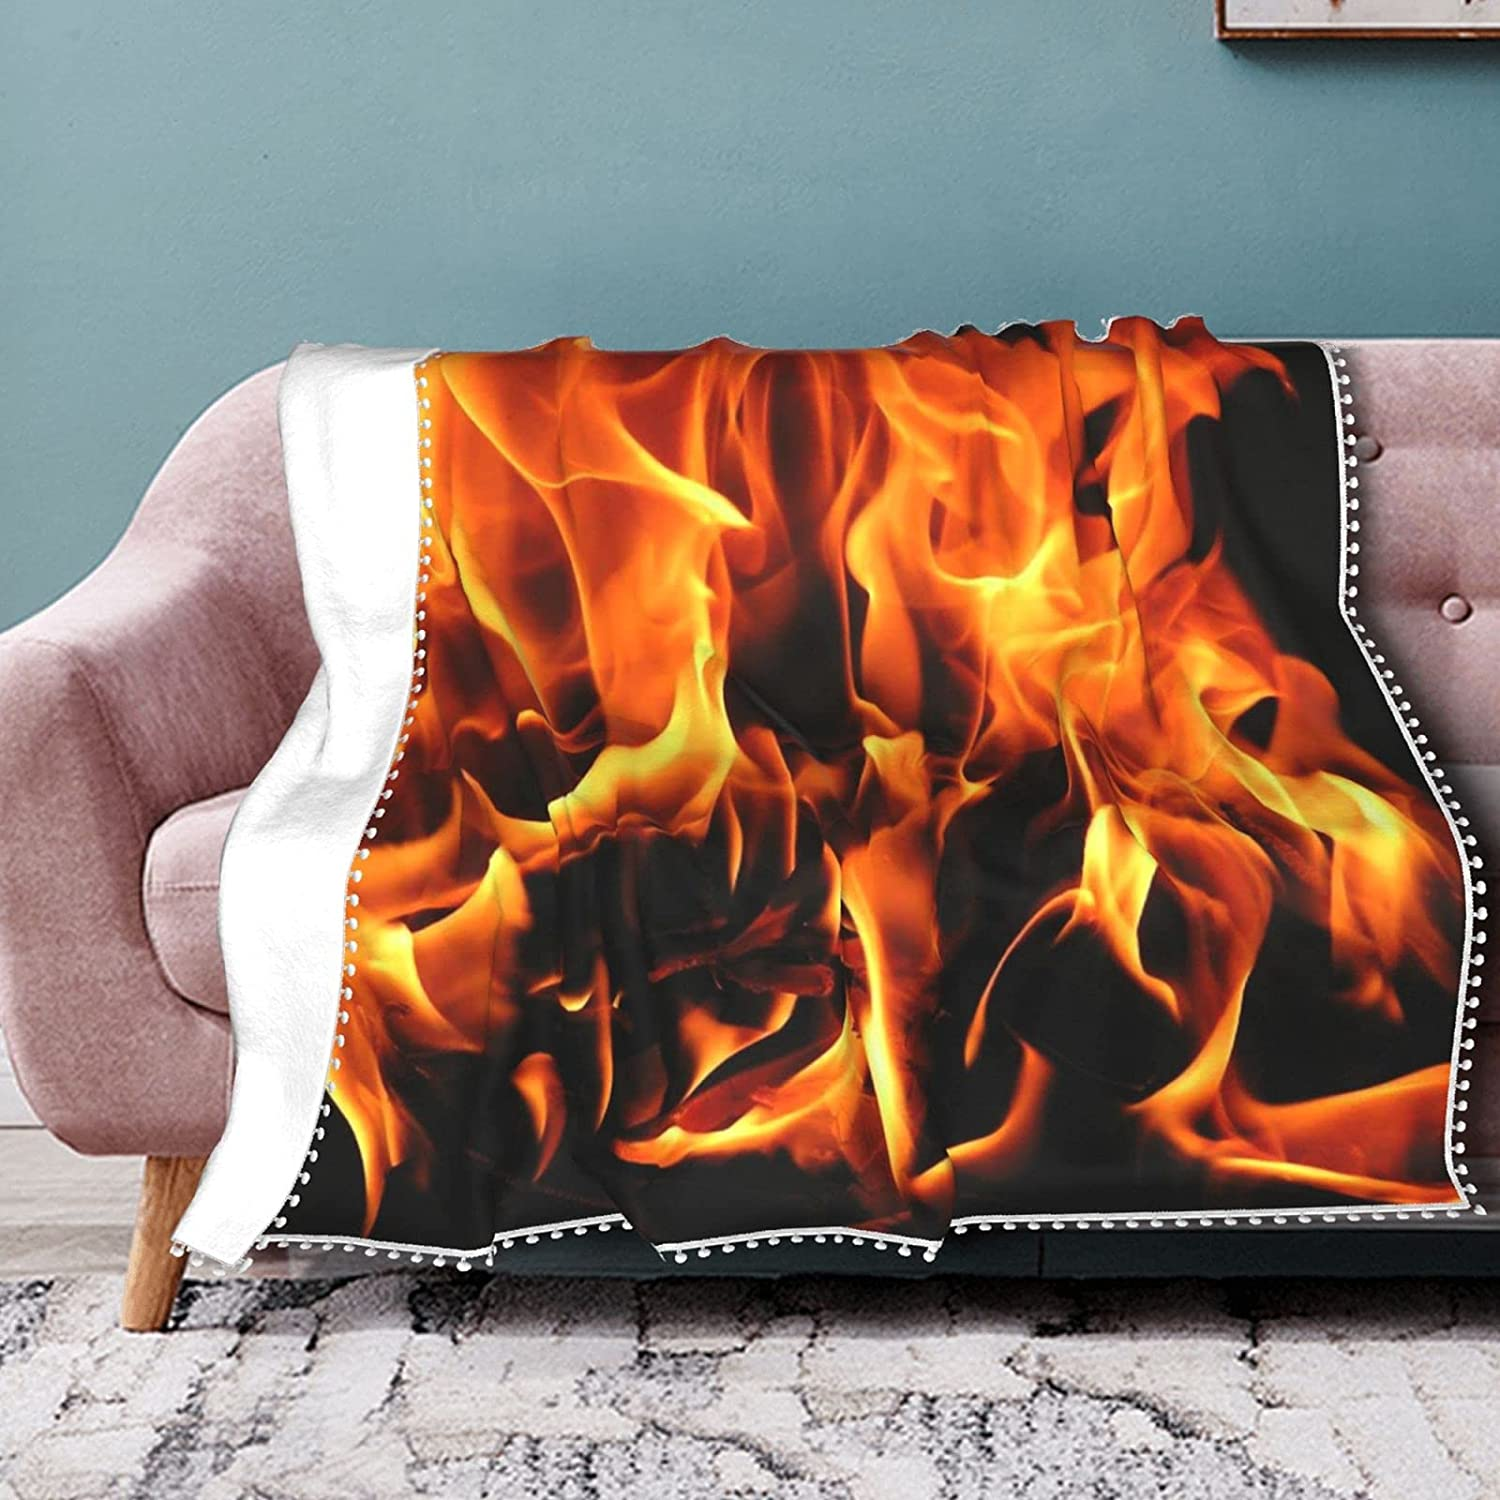 WIUEZWY Hamburger Max OFFicial shop 77% OFF Blanket Fire Art Soft Funny Flannel Th